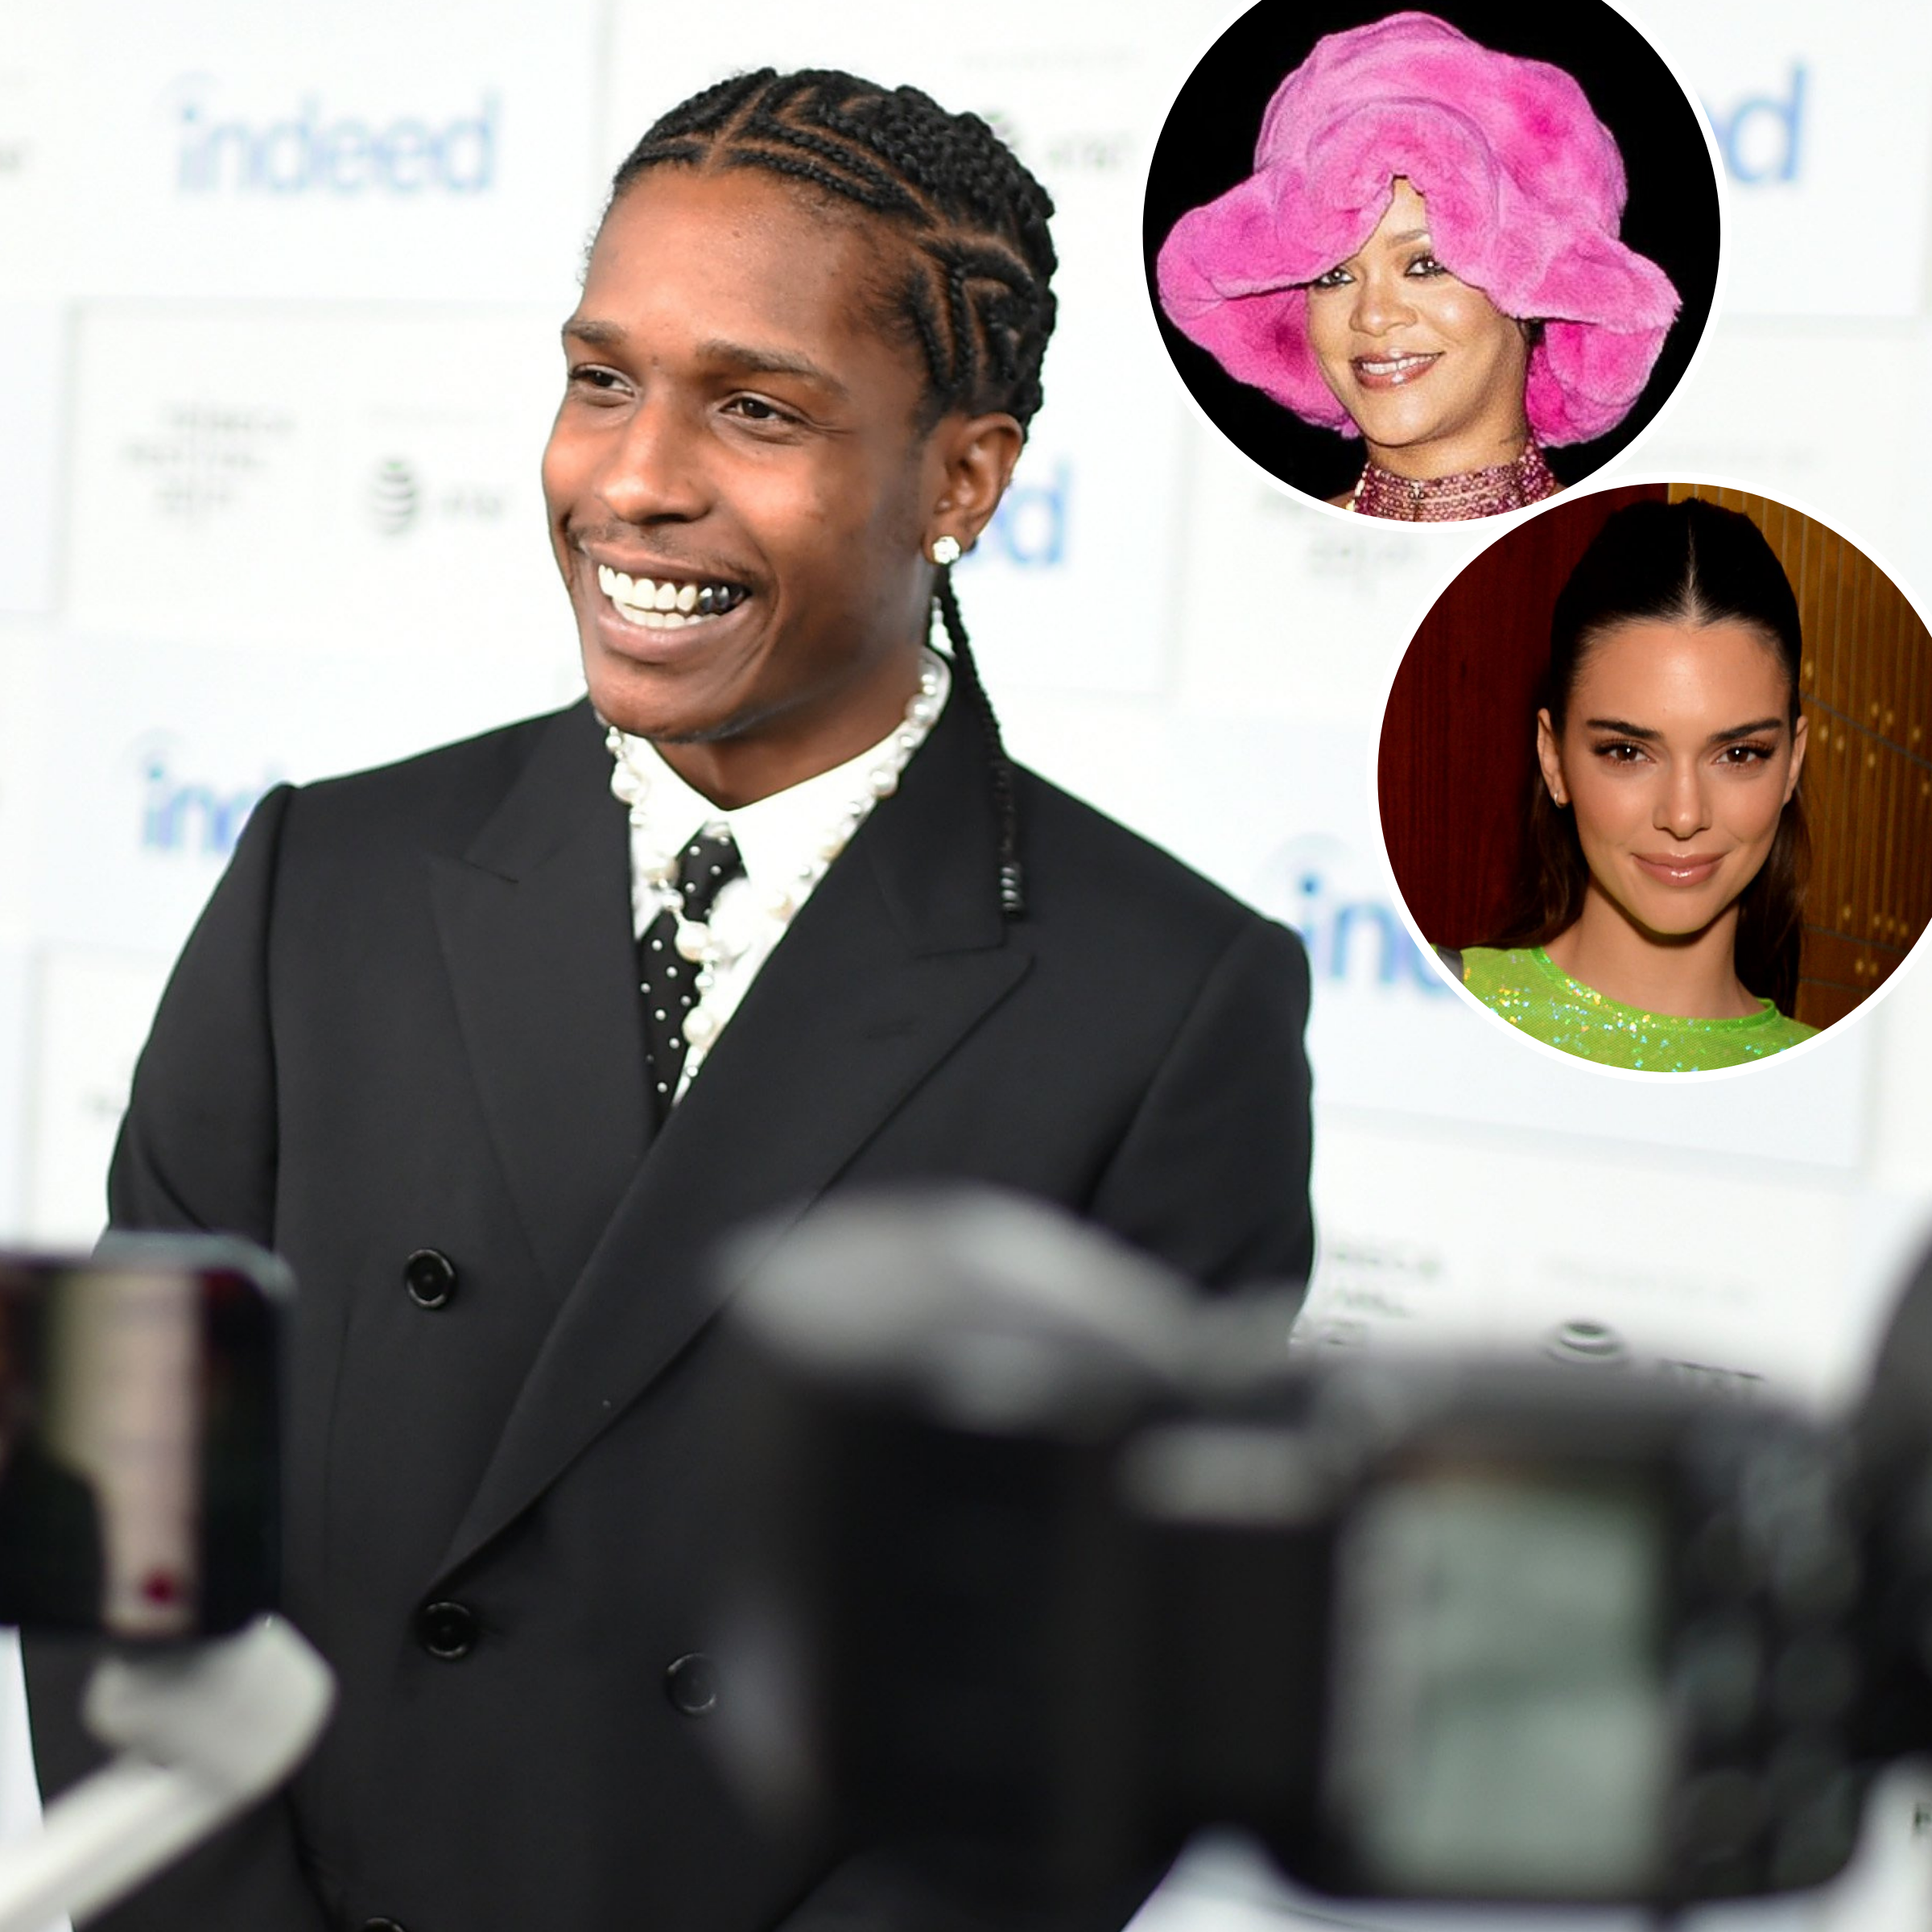 Dated rocky who asap has Who has